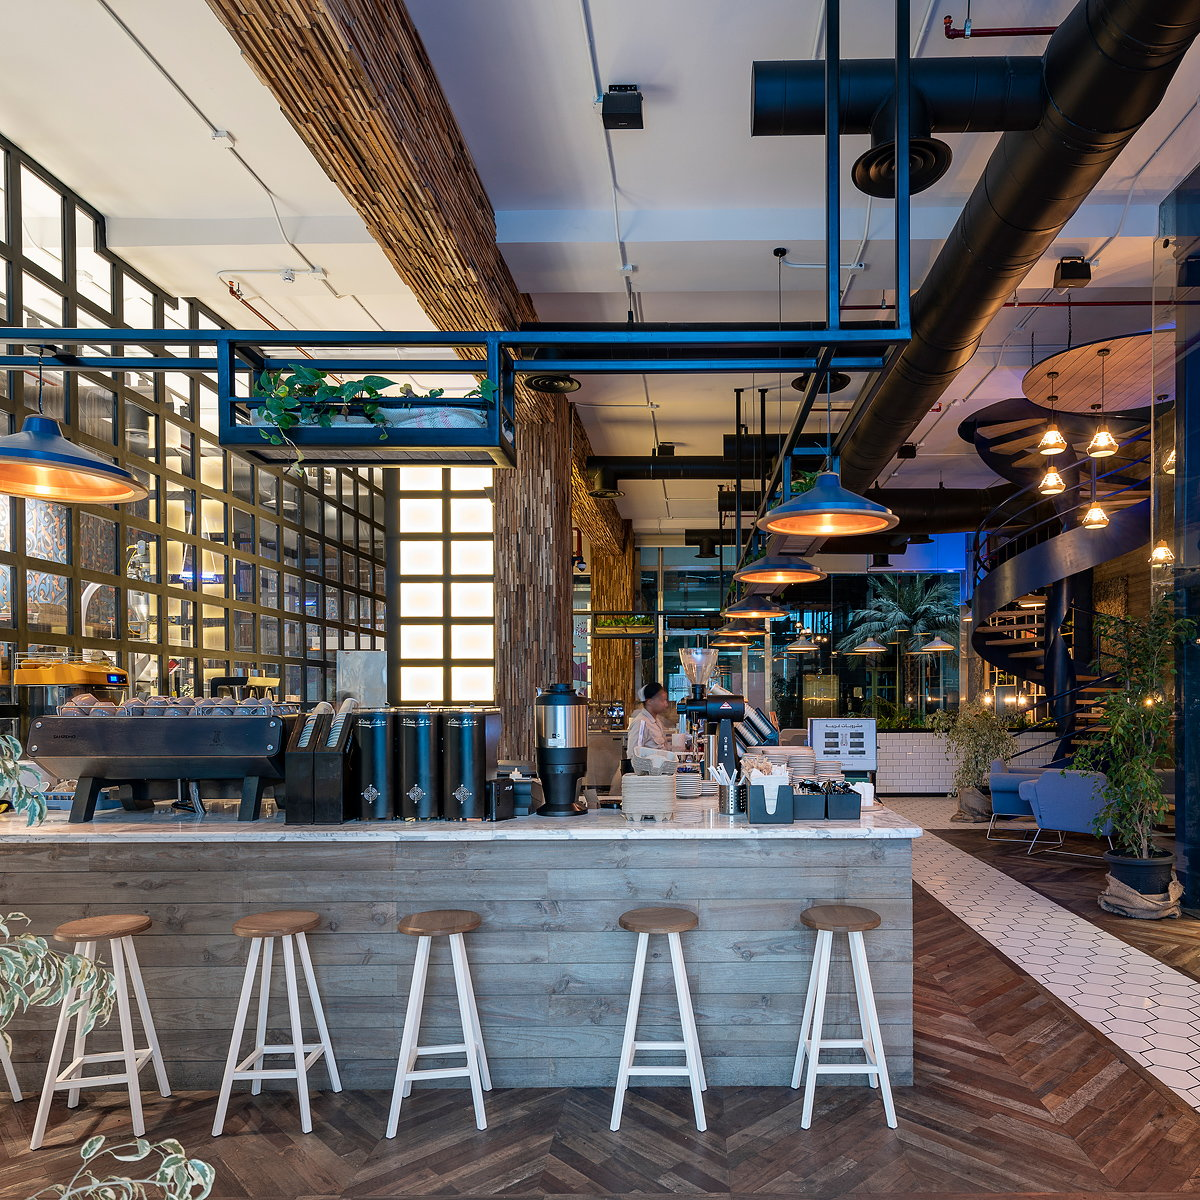 Liqui Design Completes the Interior Design of Brew92's Stunning Flagship Coffee Shop and Roastery